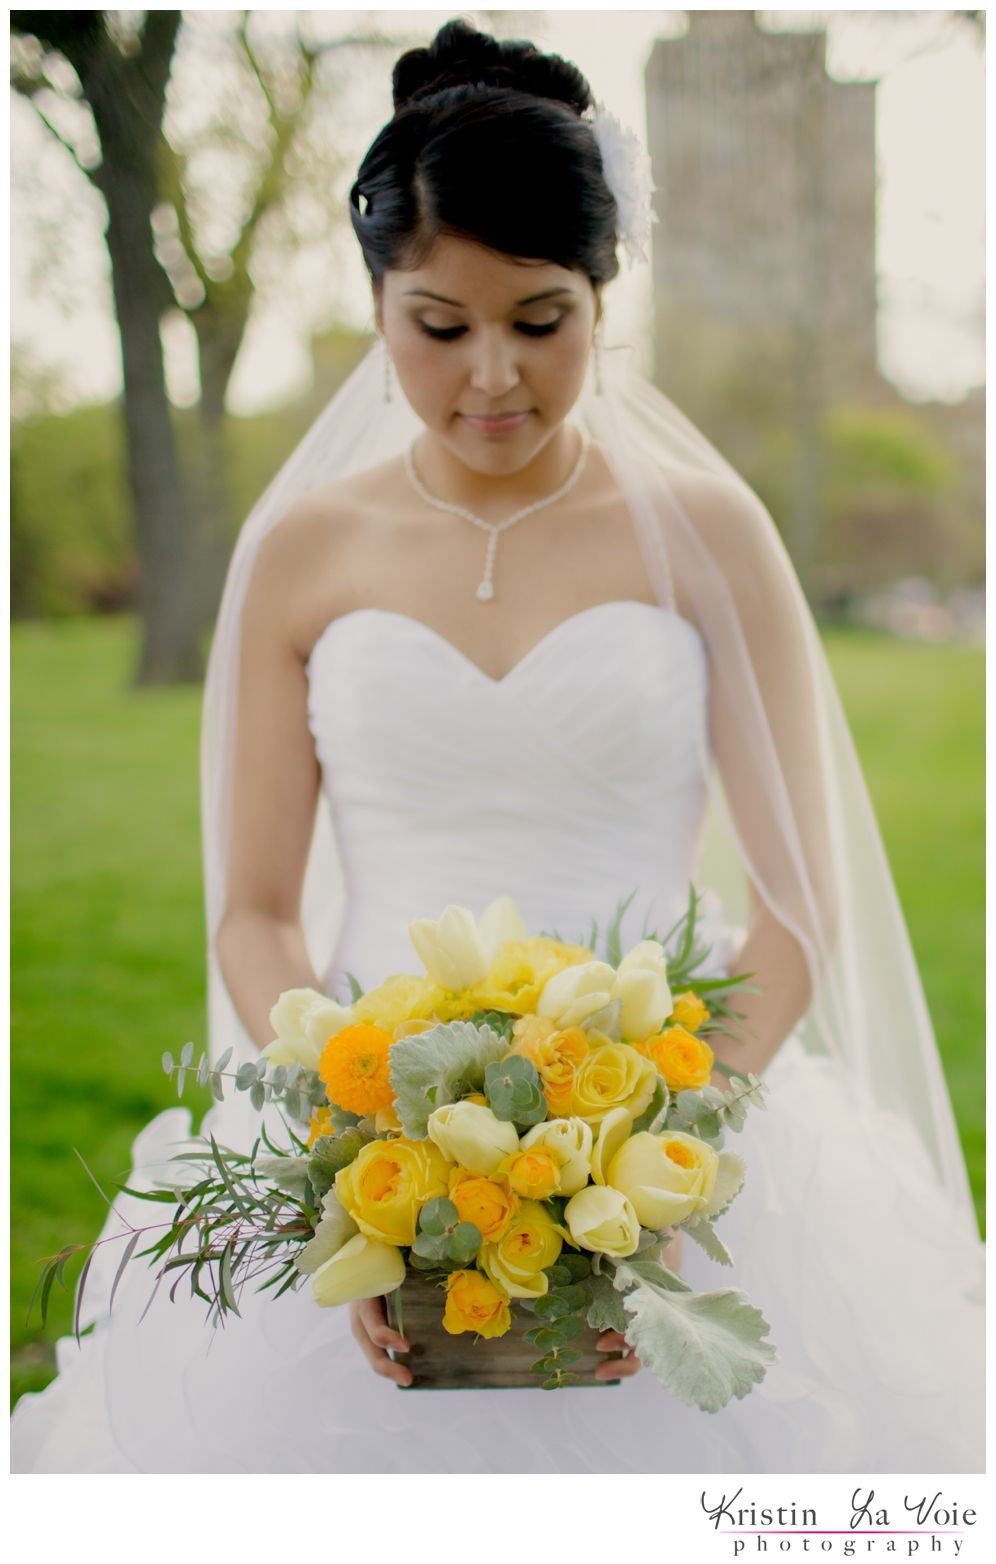 Kristin-La-Voie-Photography-Mint-Yellow-Styled-Shoot-Lincoln-Park-Wedding-Photographer-65.jpg